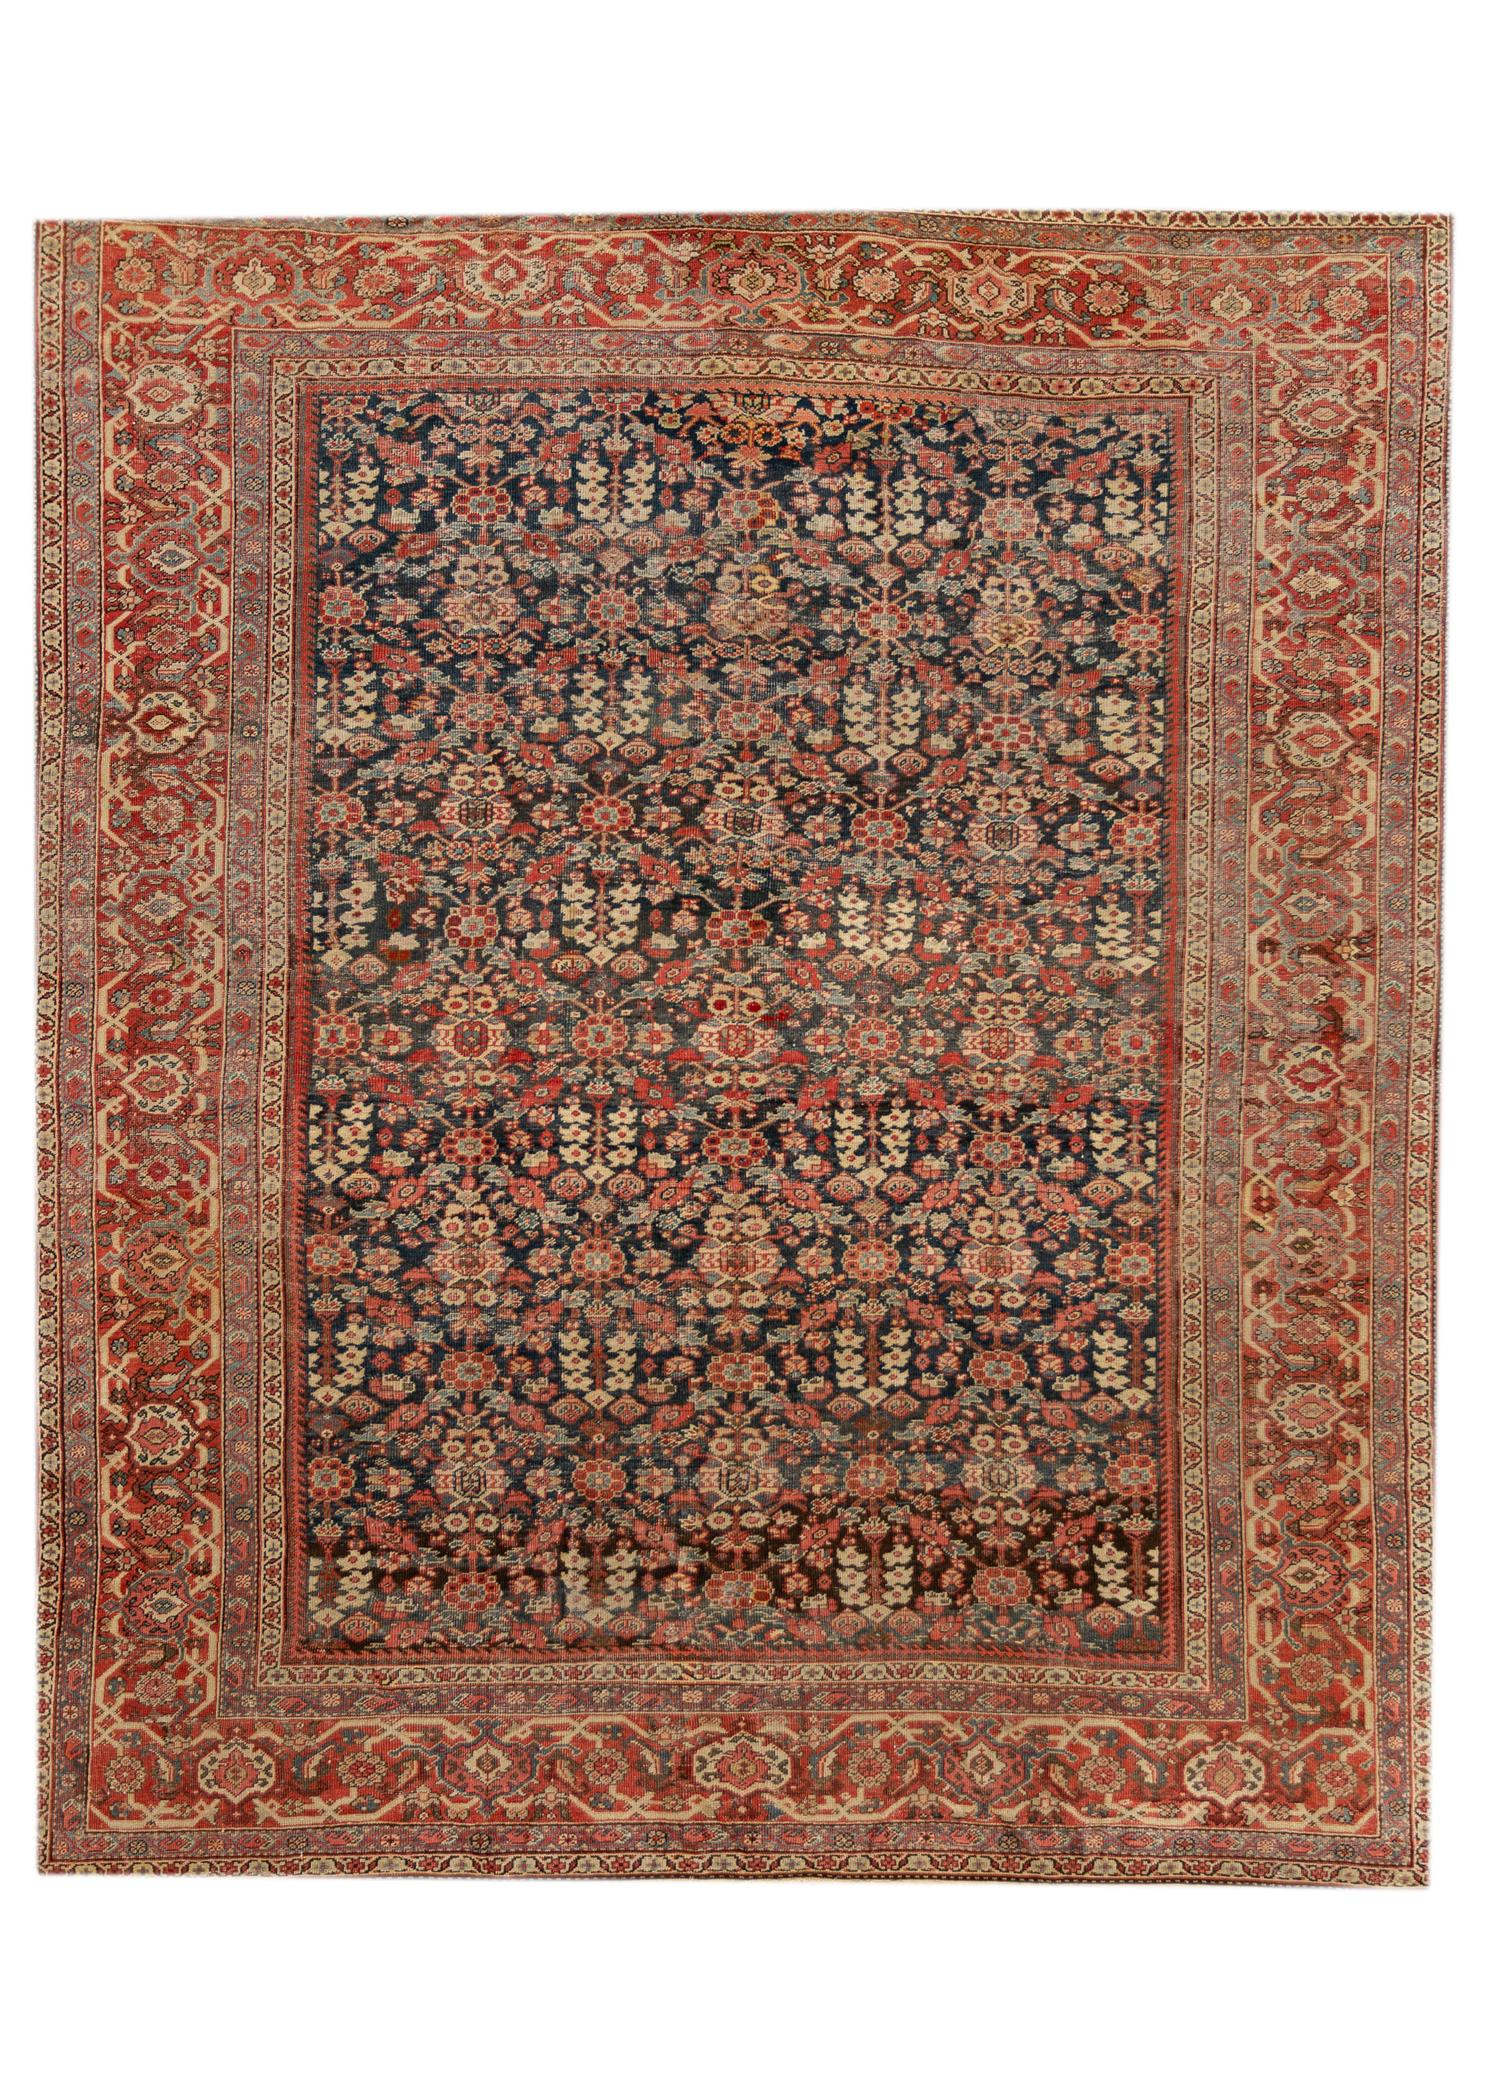 Antique Mahal Rug, 9X10